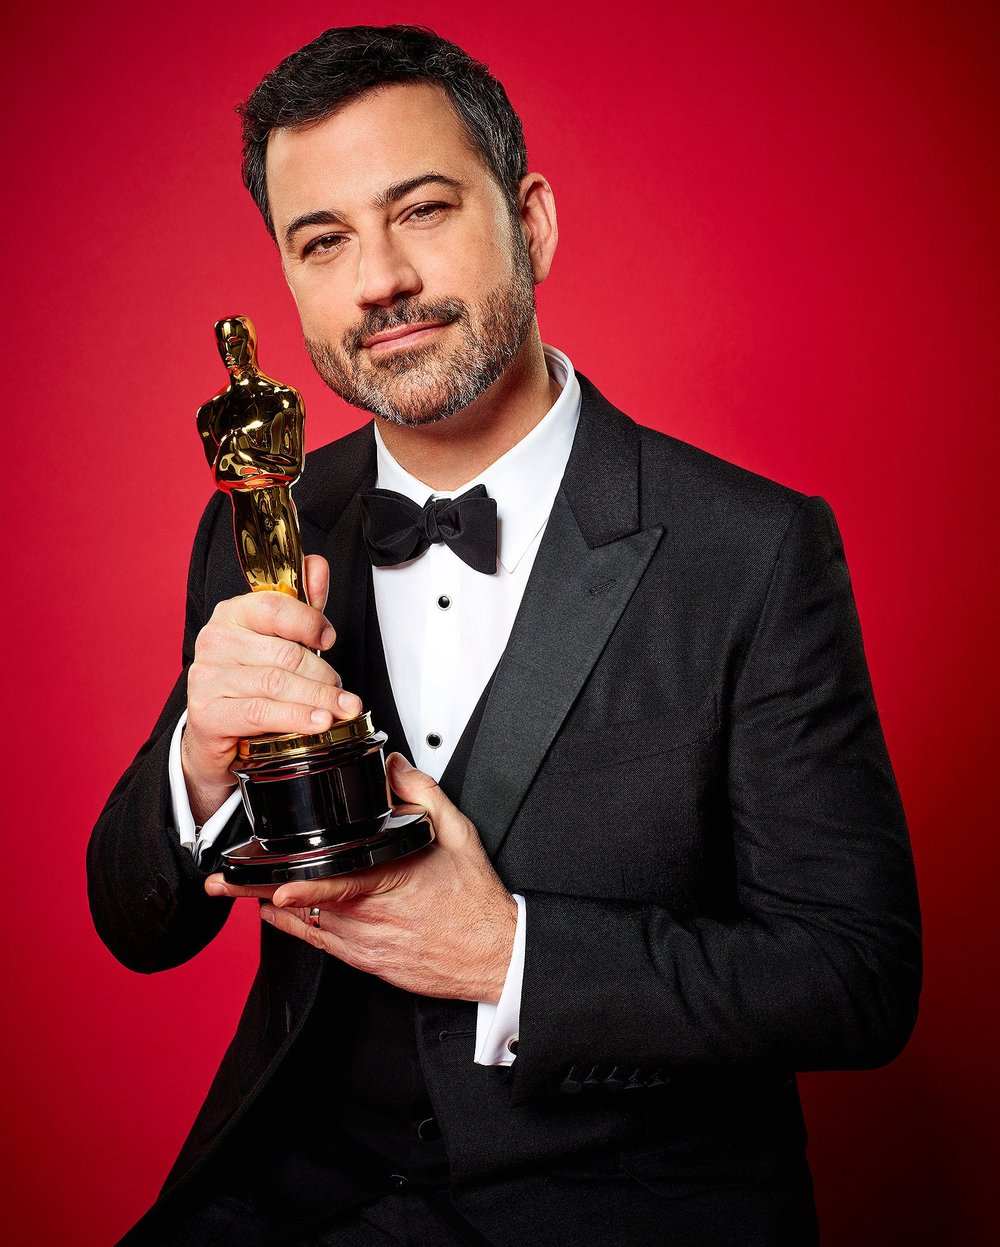 The 89th Academy Awards will be hosted by Jimmy Kimmel.